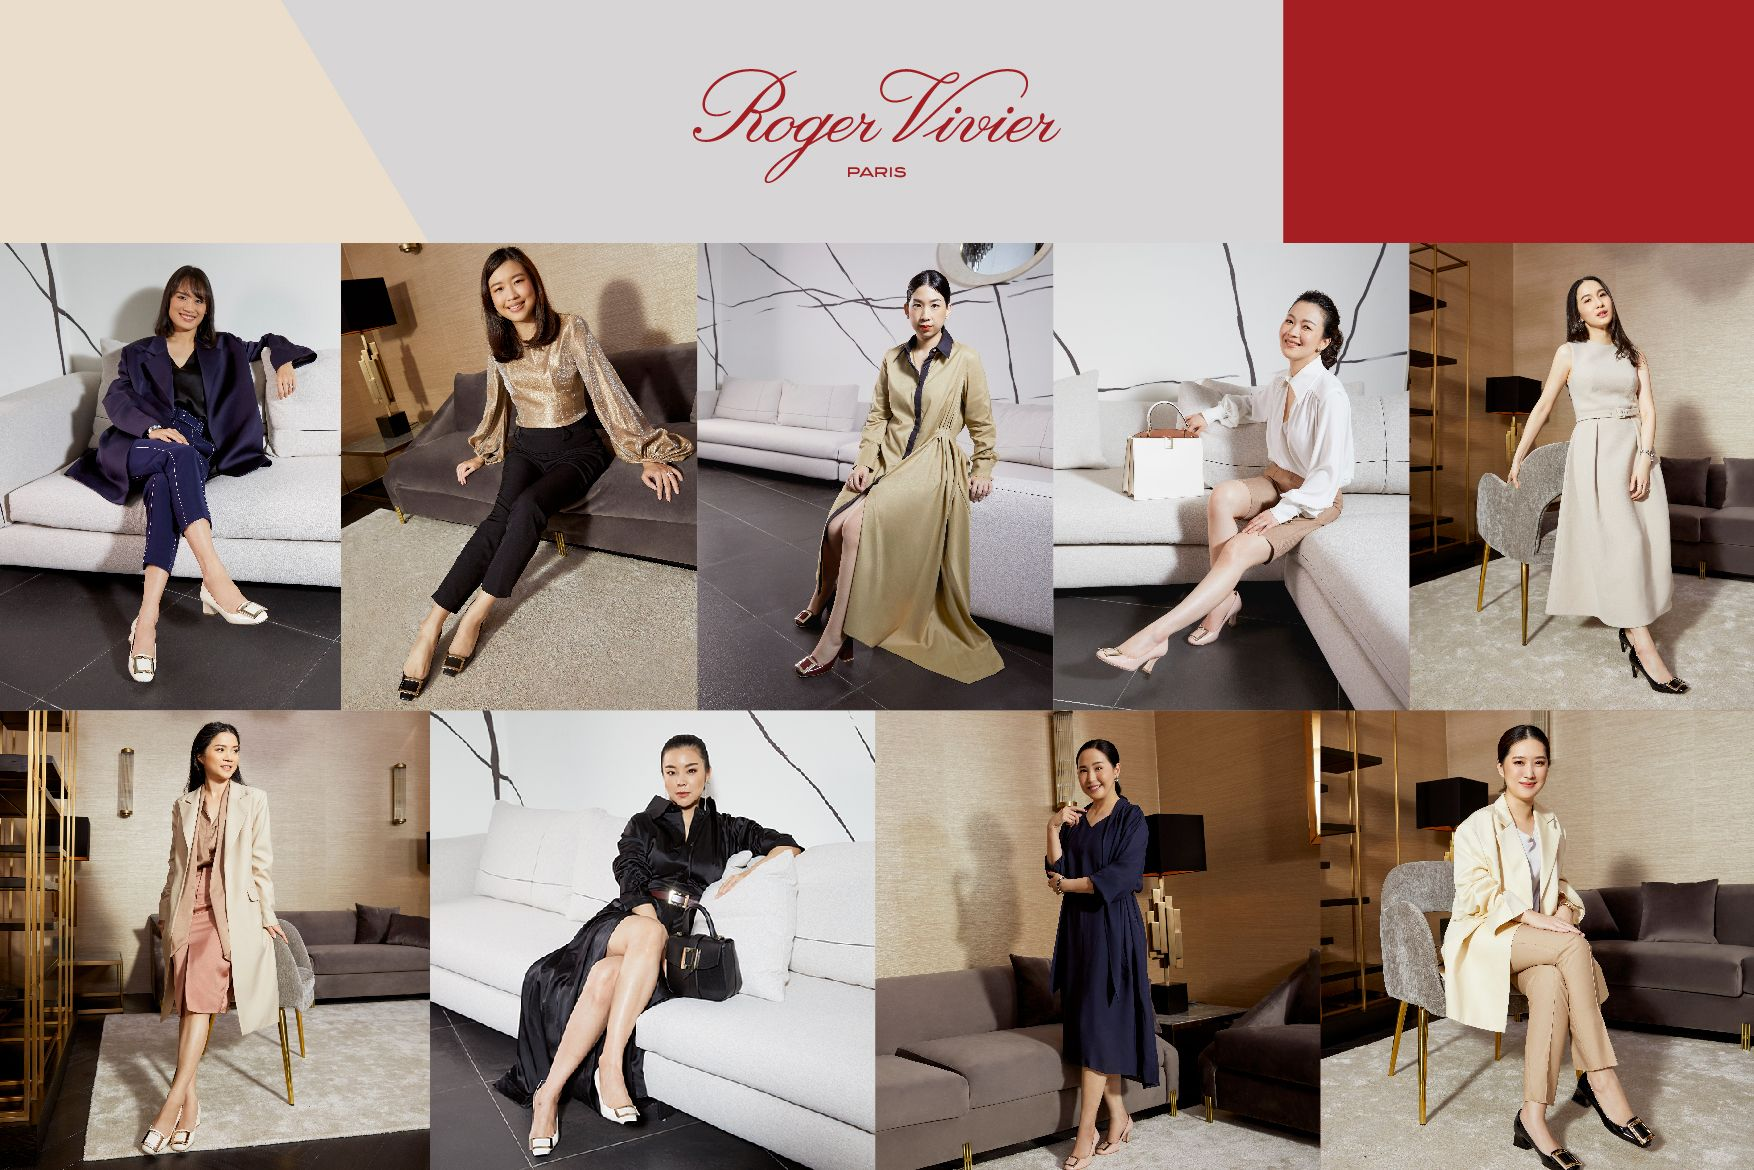 Vivier's Ladies Share The Source of Their Drive For Power And Success